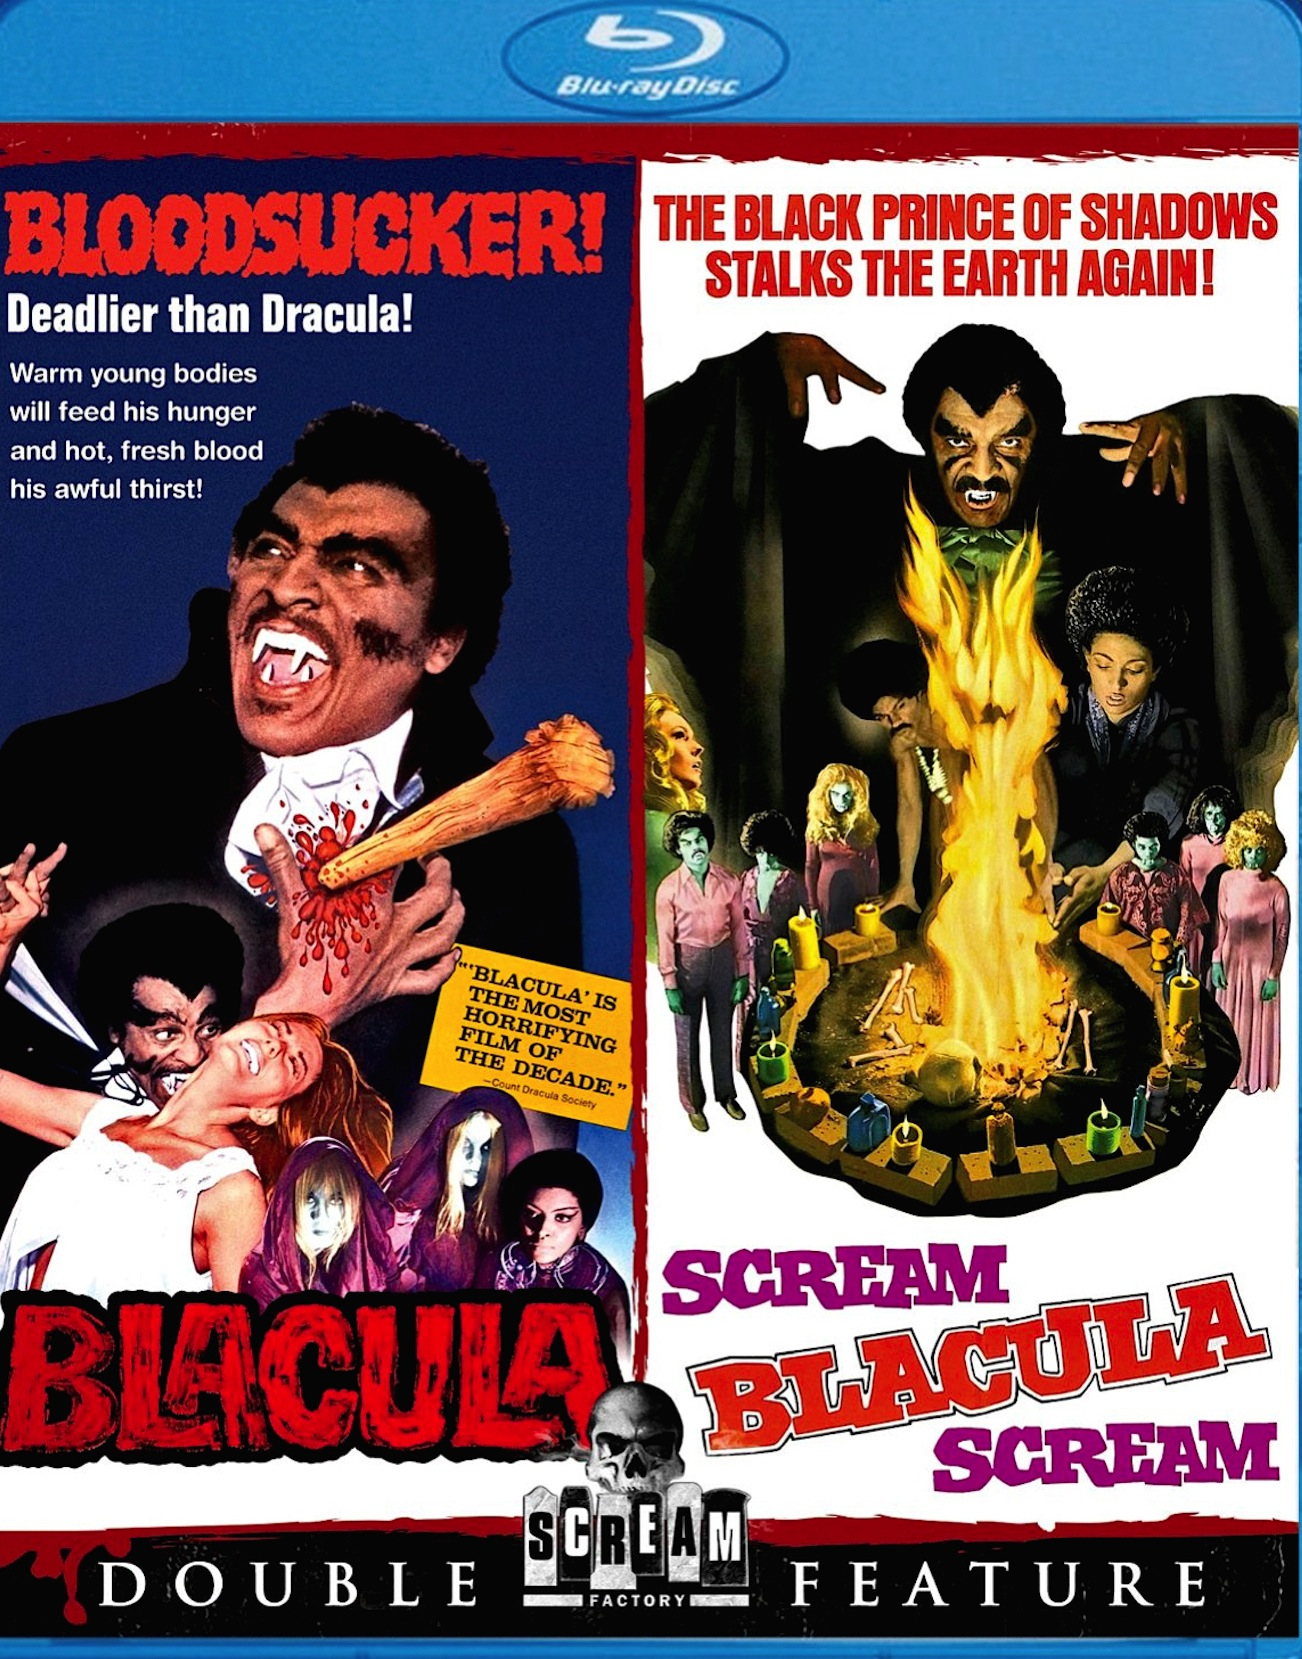 Blacula / Scream Blacula Scream